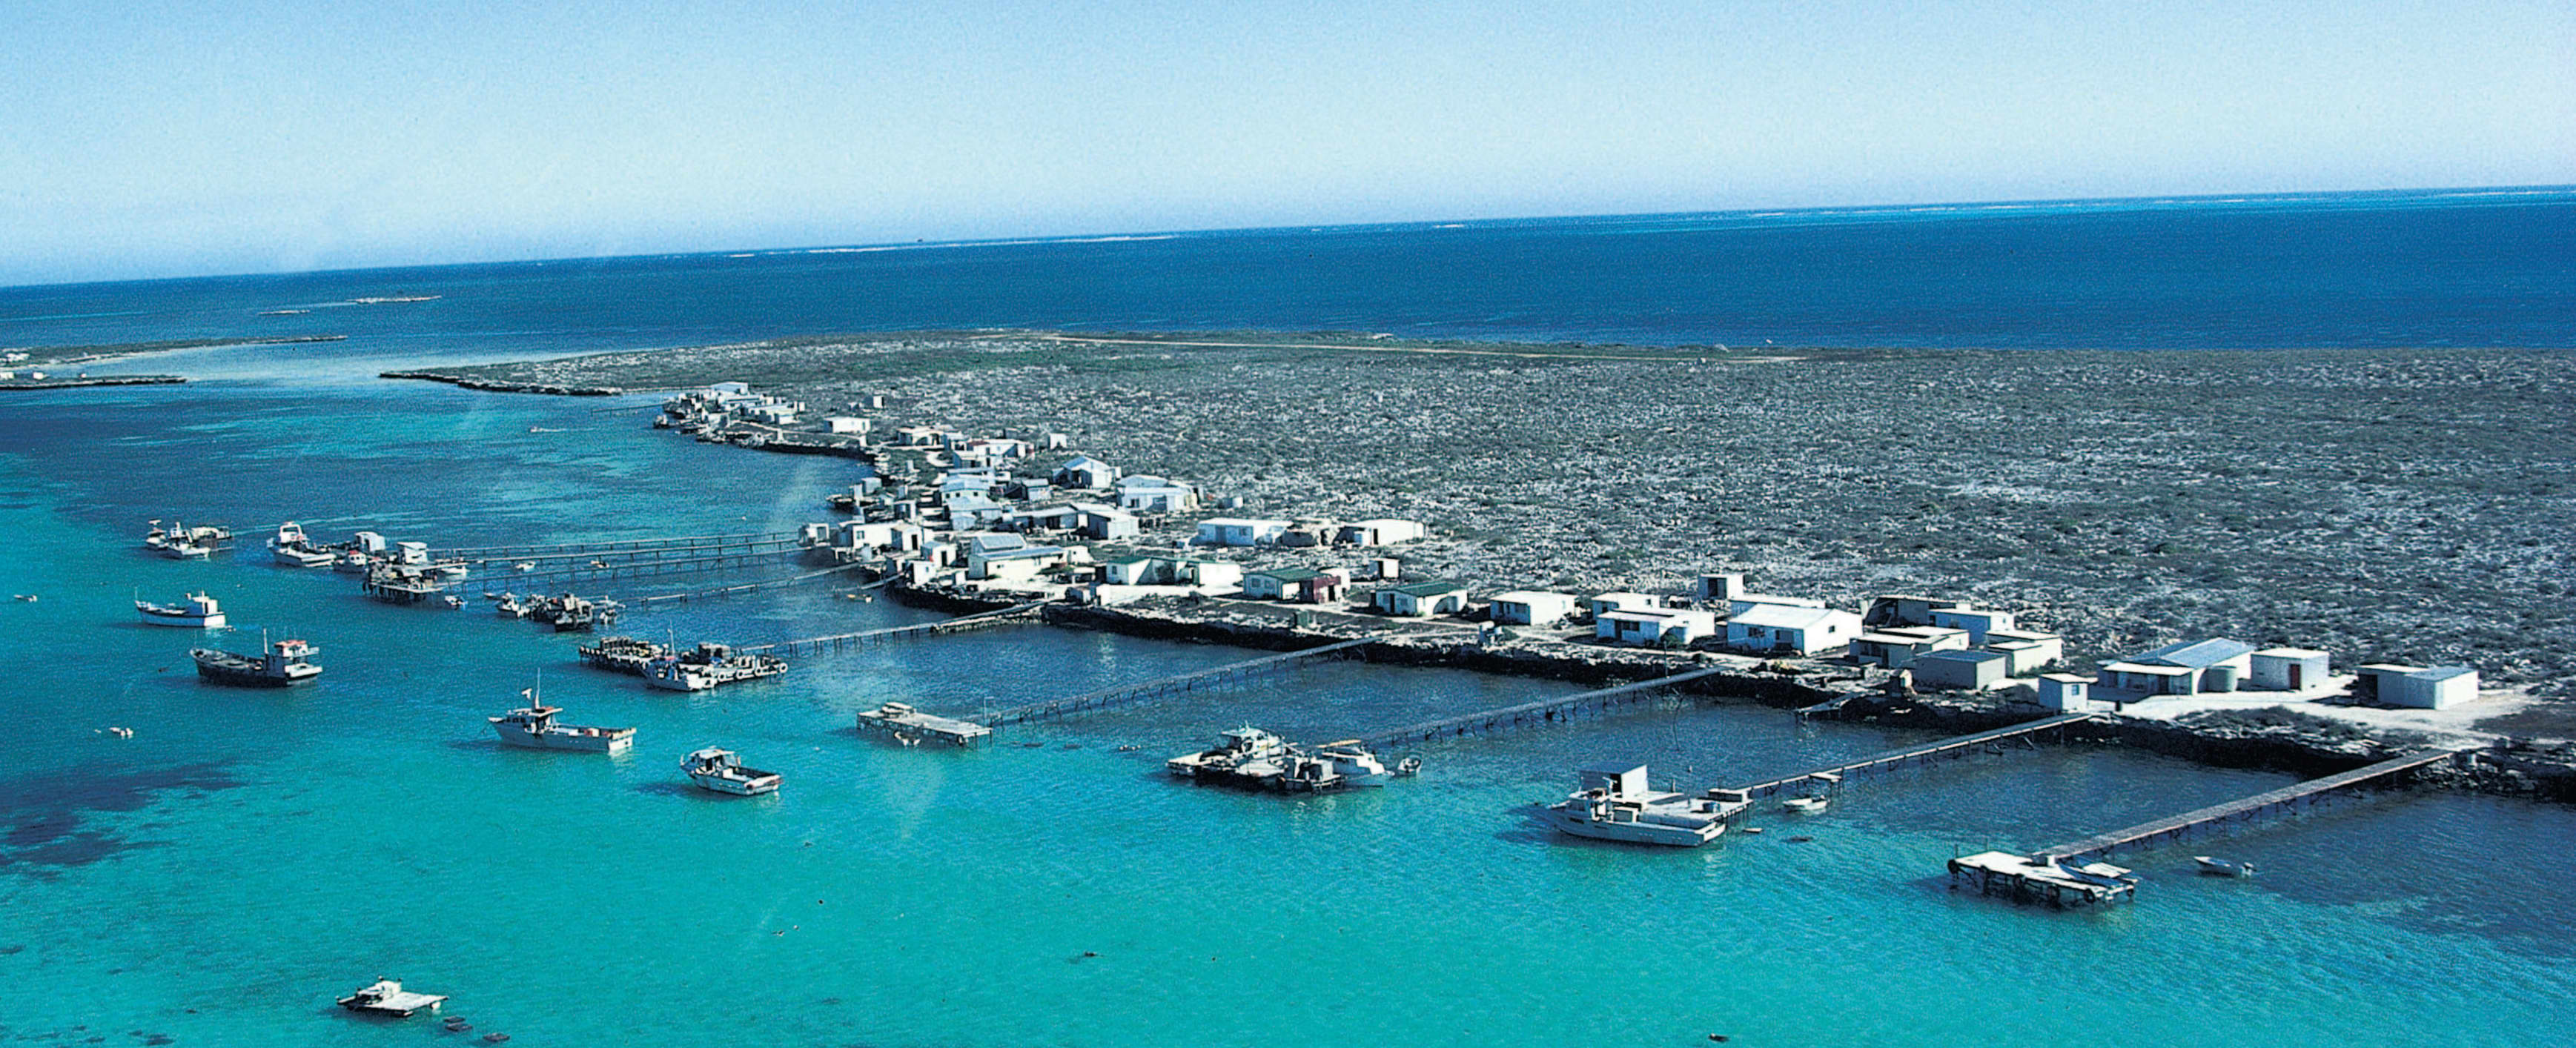 Aerial view of fishing shacks with bright blue water and visible reef